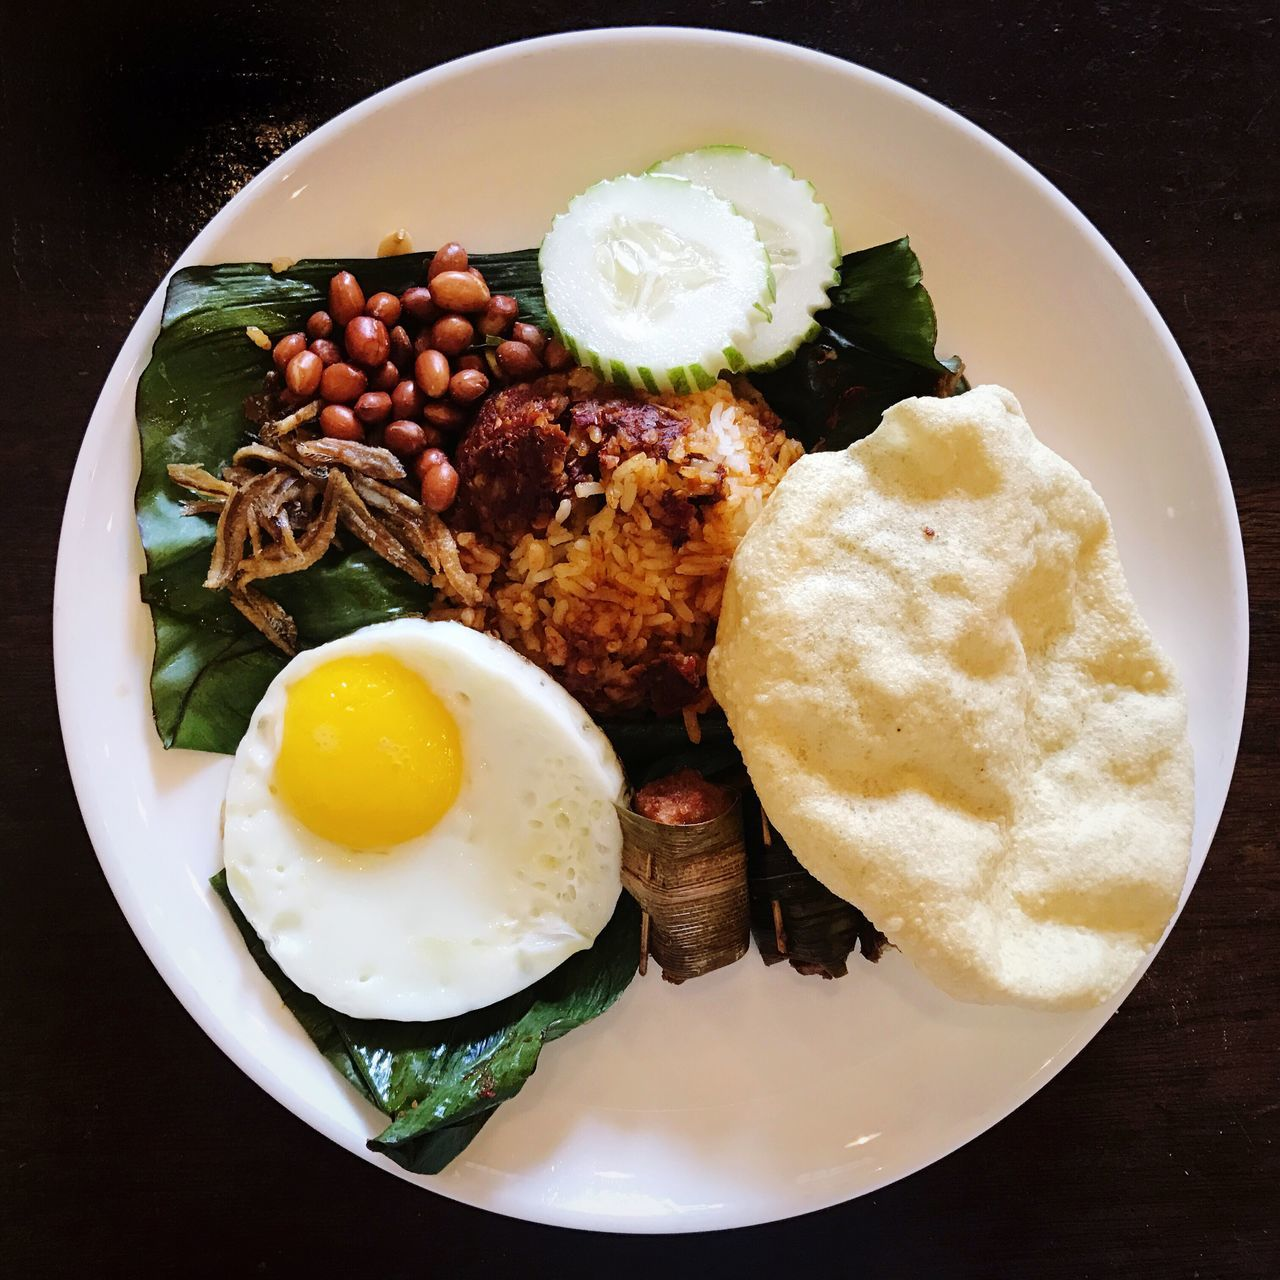 egg, food, food and drink, egg yolk, ready-to-eat, freshness, plate, fried egg, no people, healthy eating, high angle view, indoors, serving size, close-up, day